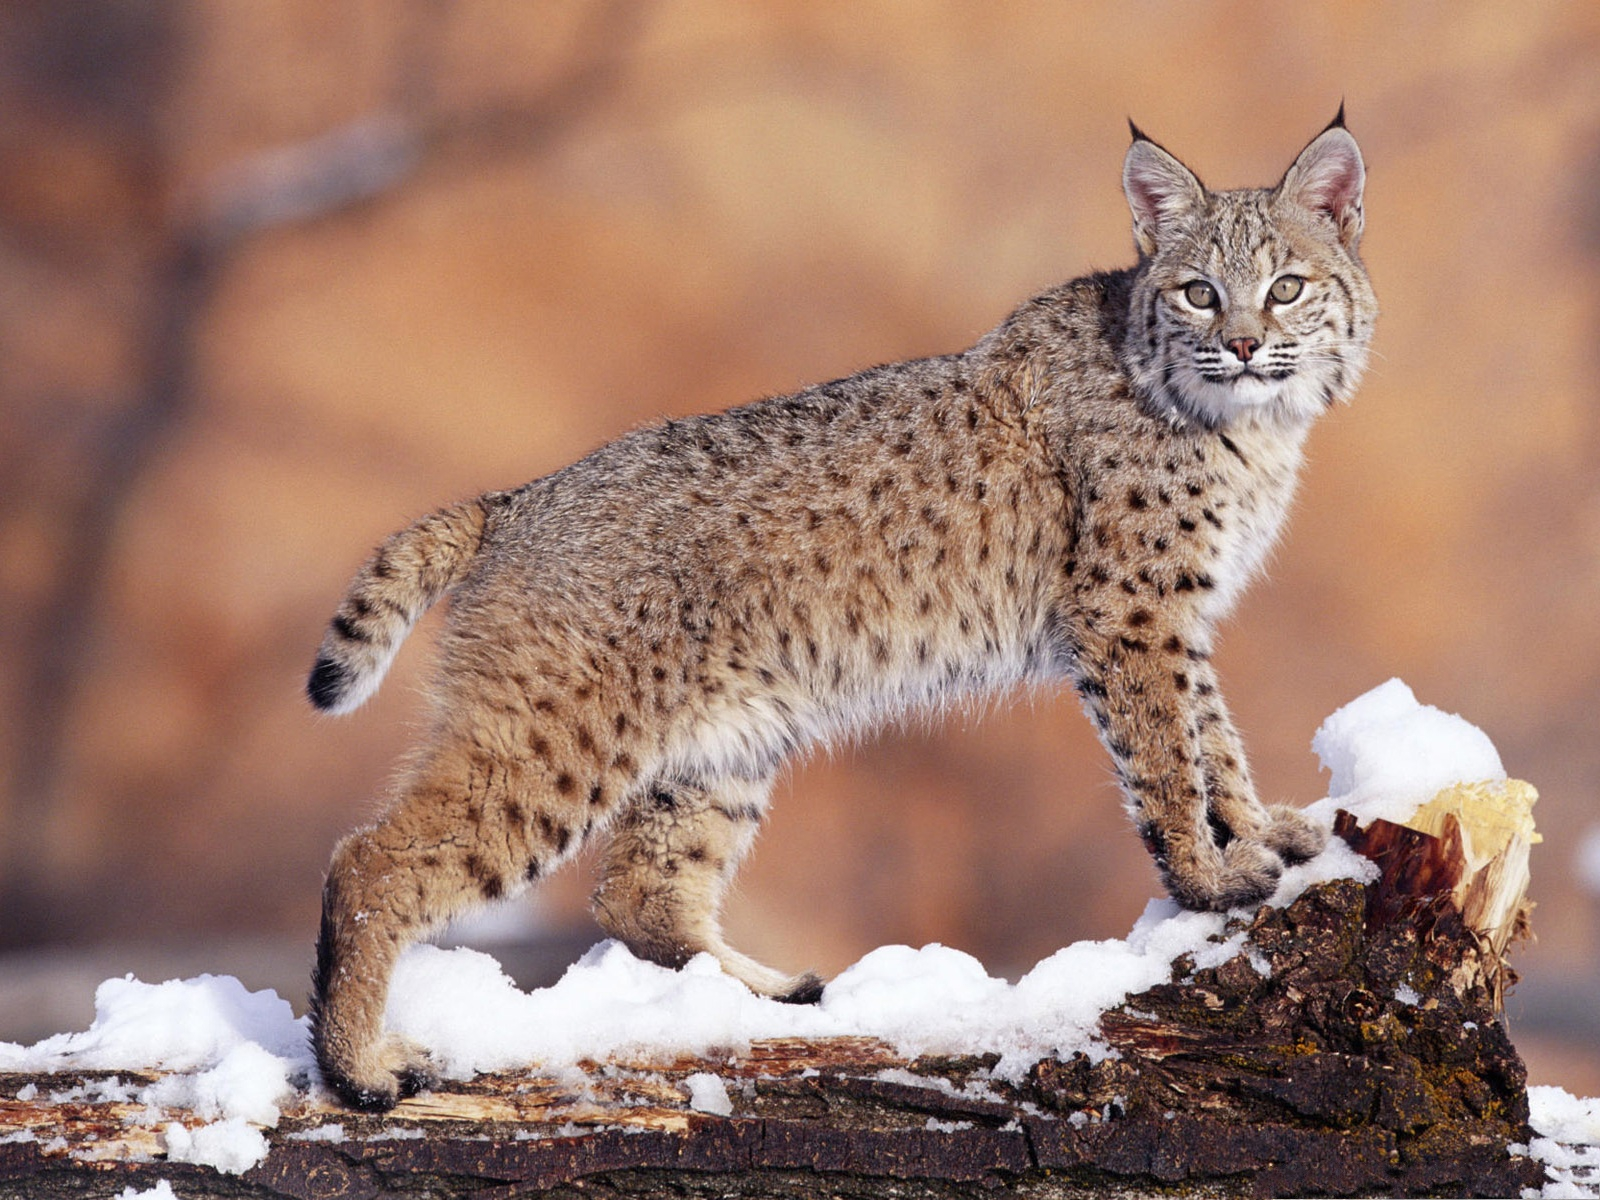 click to free download the wallpaper--Cute Cat Pic, Large Bobcat Standing in Snow, Magnificent Look 1600X1200 free wallpaper download